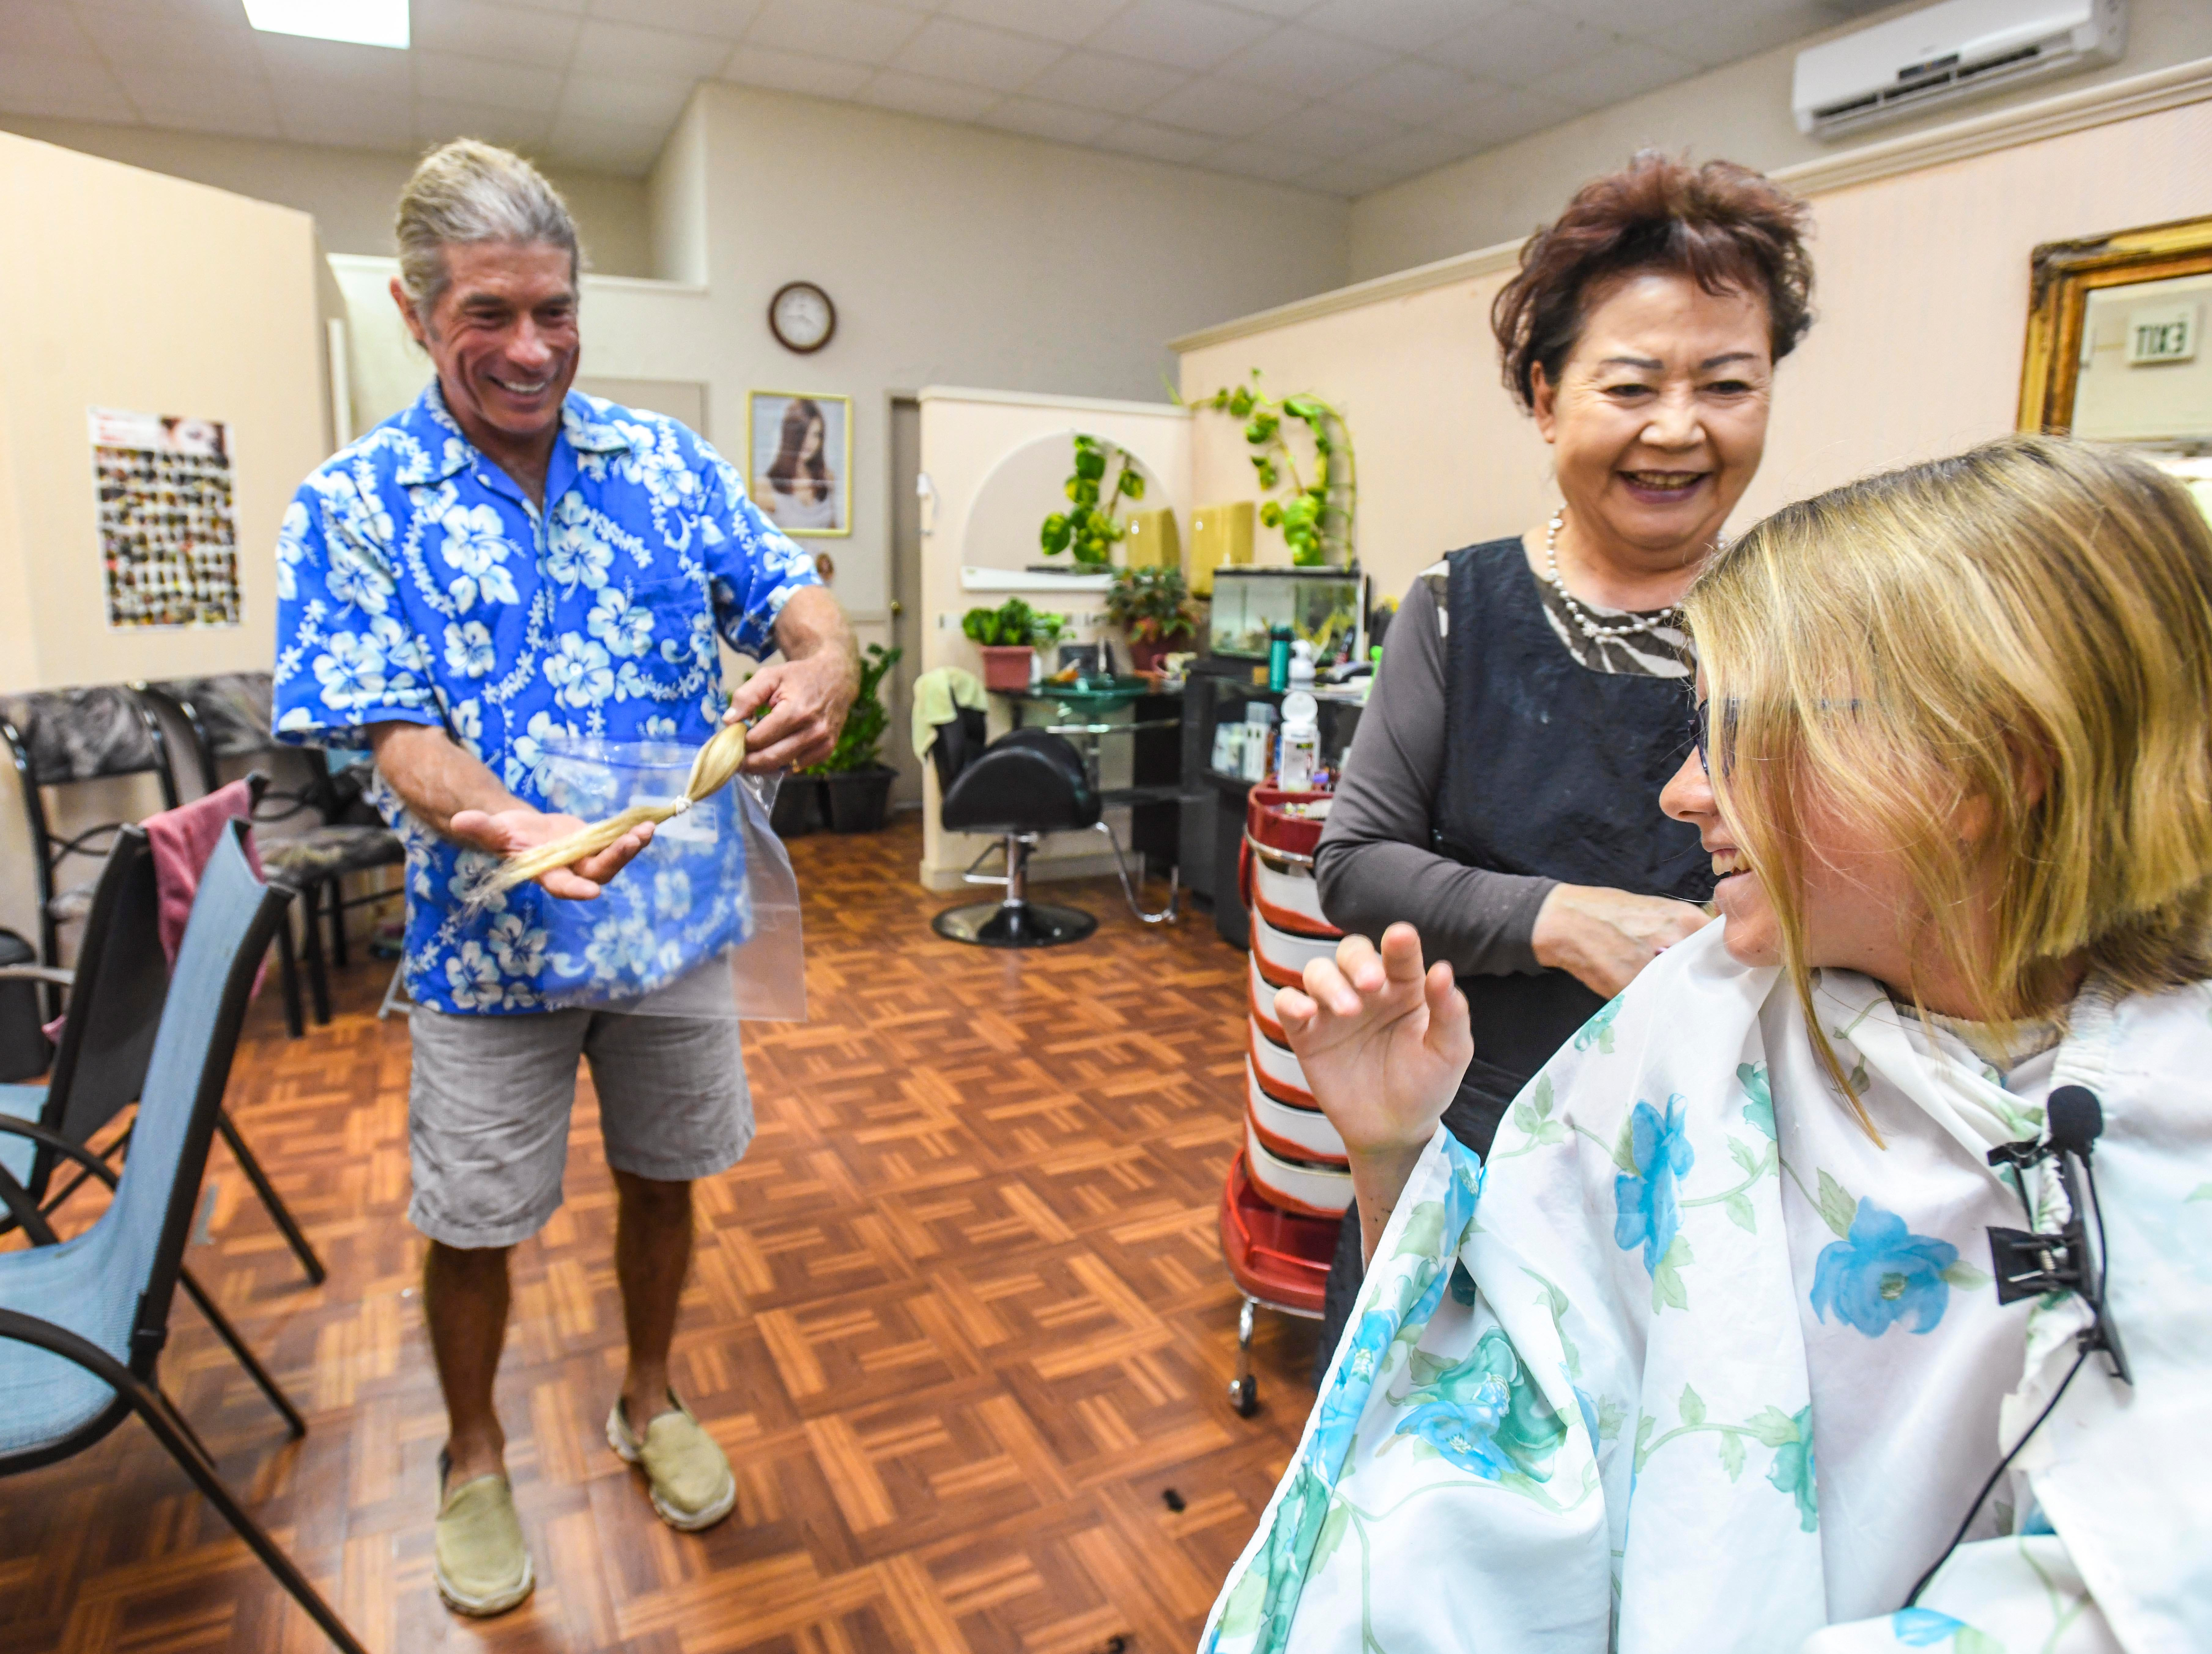 Shepherd DeBenedictis, left, holds a ponytail cut fromthe head of his daughter, Raylene DeBenedictis, 12, at the Grace Beauty Shop in Tamuning on Wednesday, Feb. 6, 2019. The father-daughter duo plan to donate separate locks of their hair to 360 Hair Inc. and Wigs for Kids, respectively, to be fabricated into wigs for people suffering from medical hair loss.